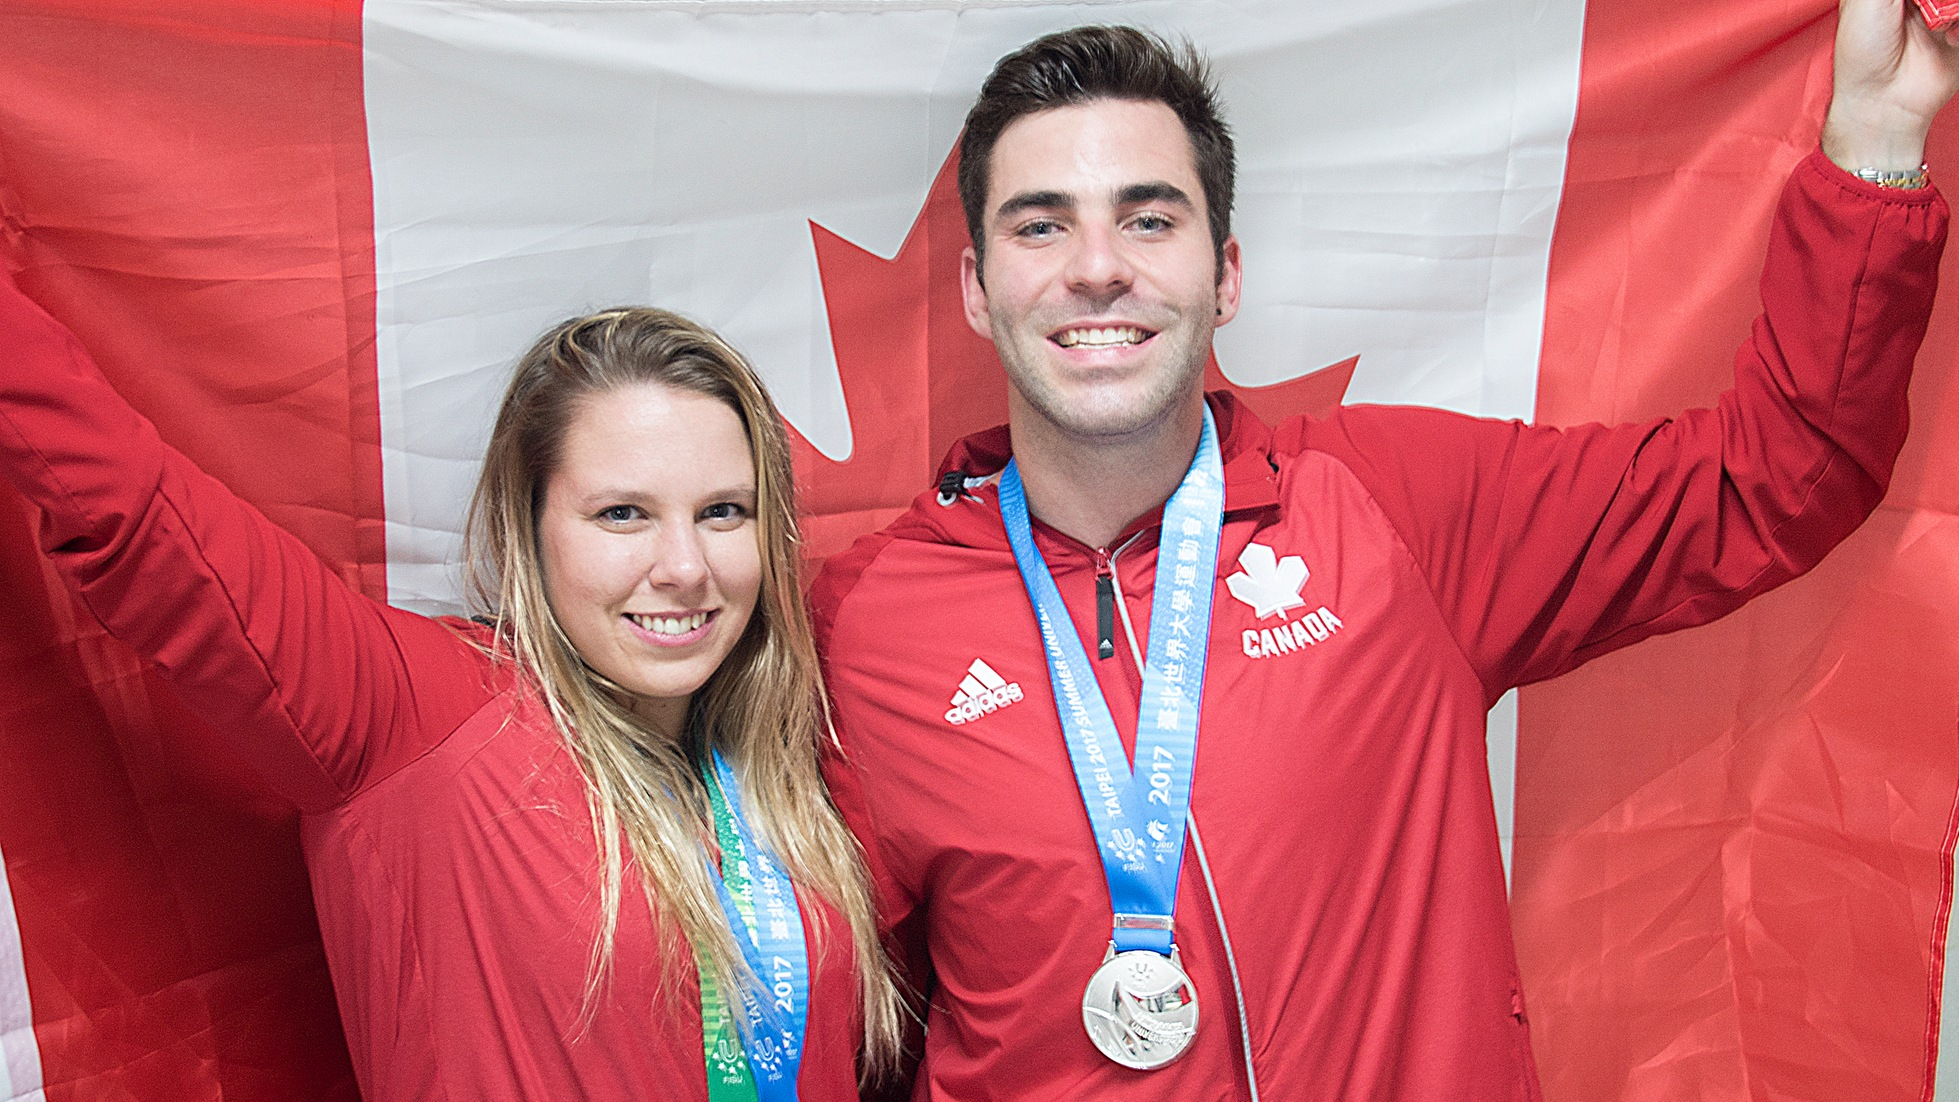 Christopher Cameron / Celina Toth and Tyler Henschel pose with their medals at the 2017 Summer Universiade in Taipei. The duo won the mixed team event to wrap up the diving competition in Taipei.